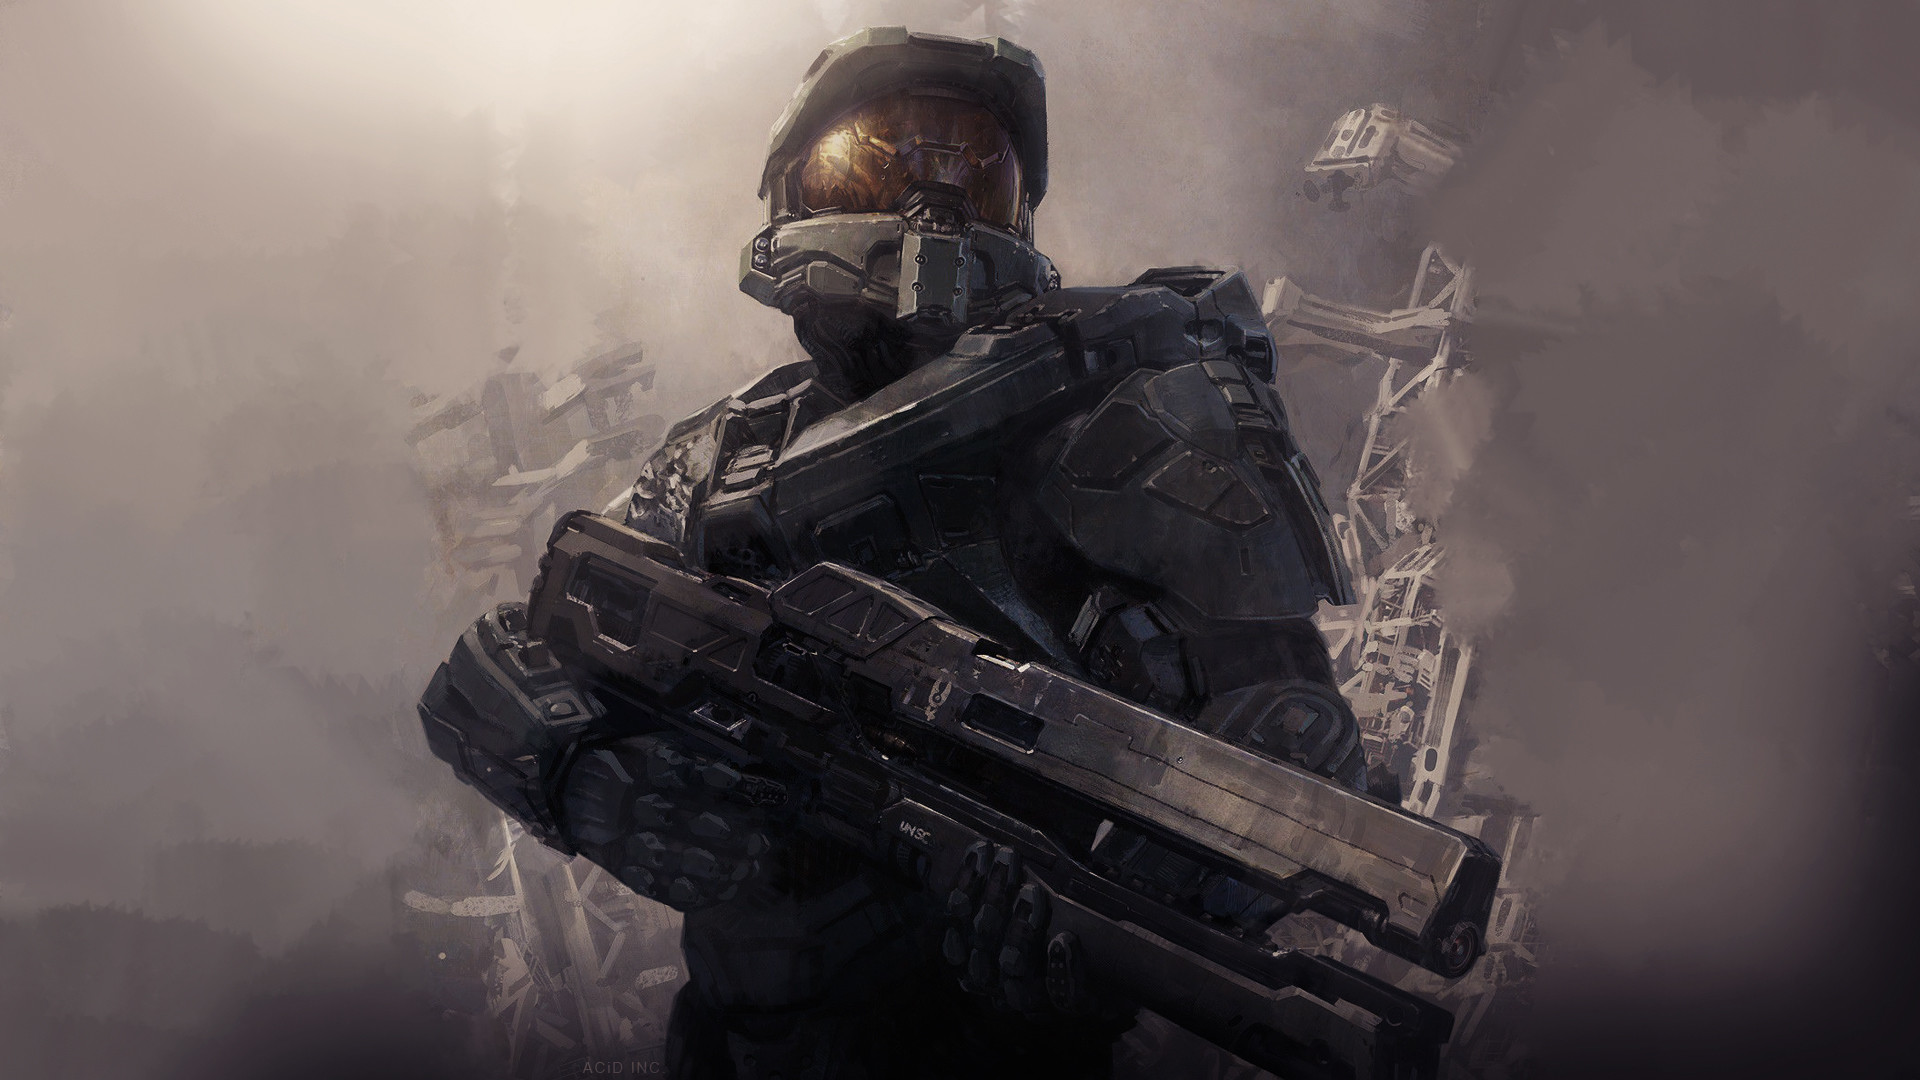 1920x1080 Halo 4 HD Wallpaper | Background Image |  | ID:393919 - Wallpaper  Abyss